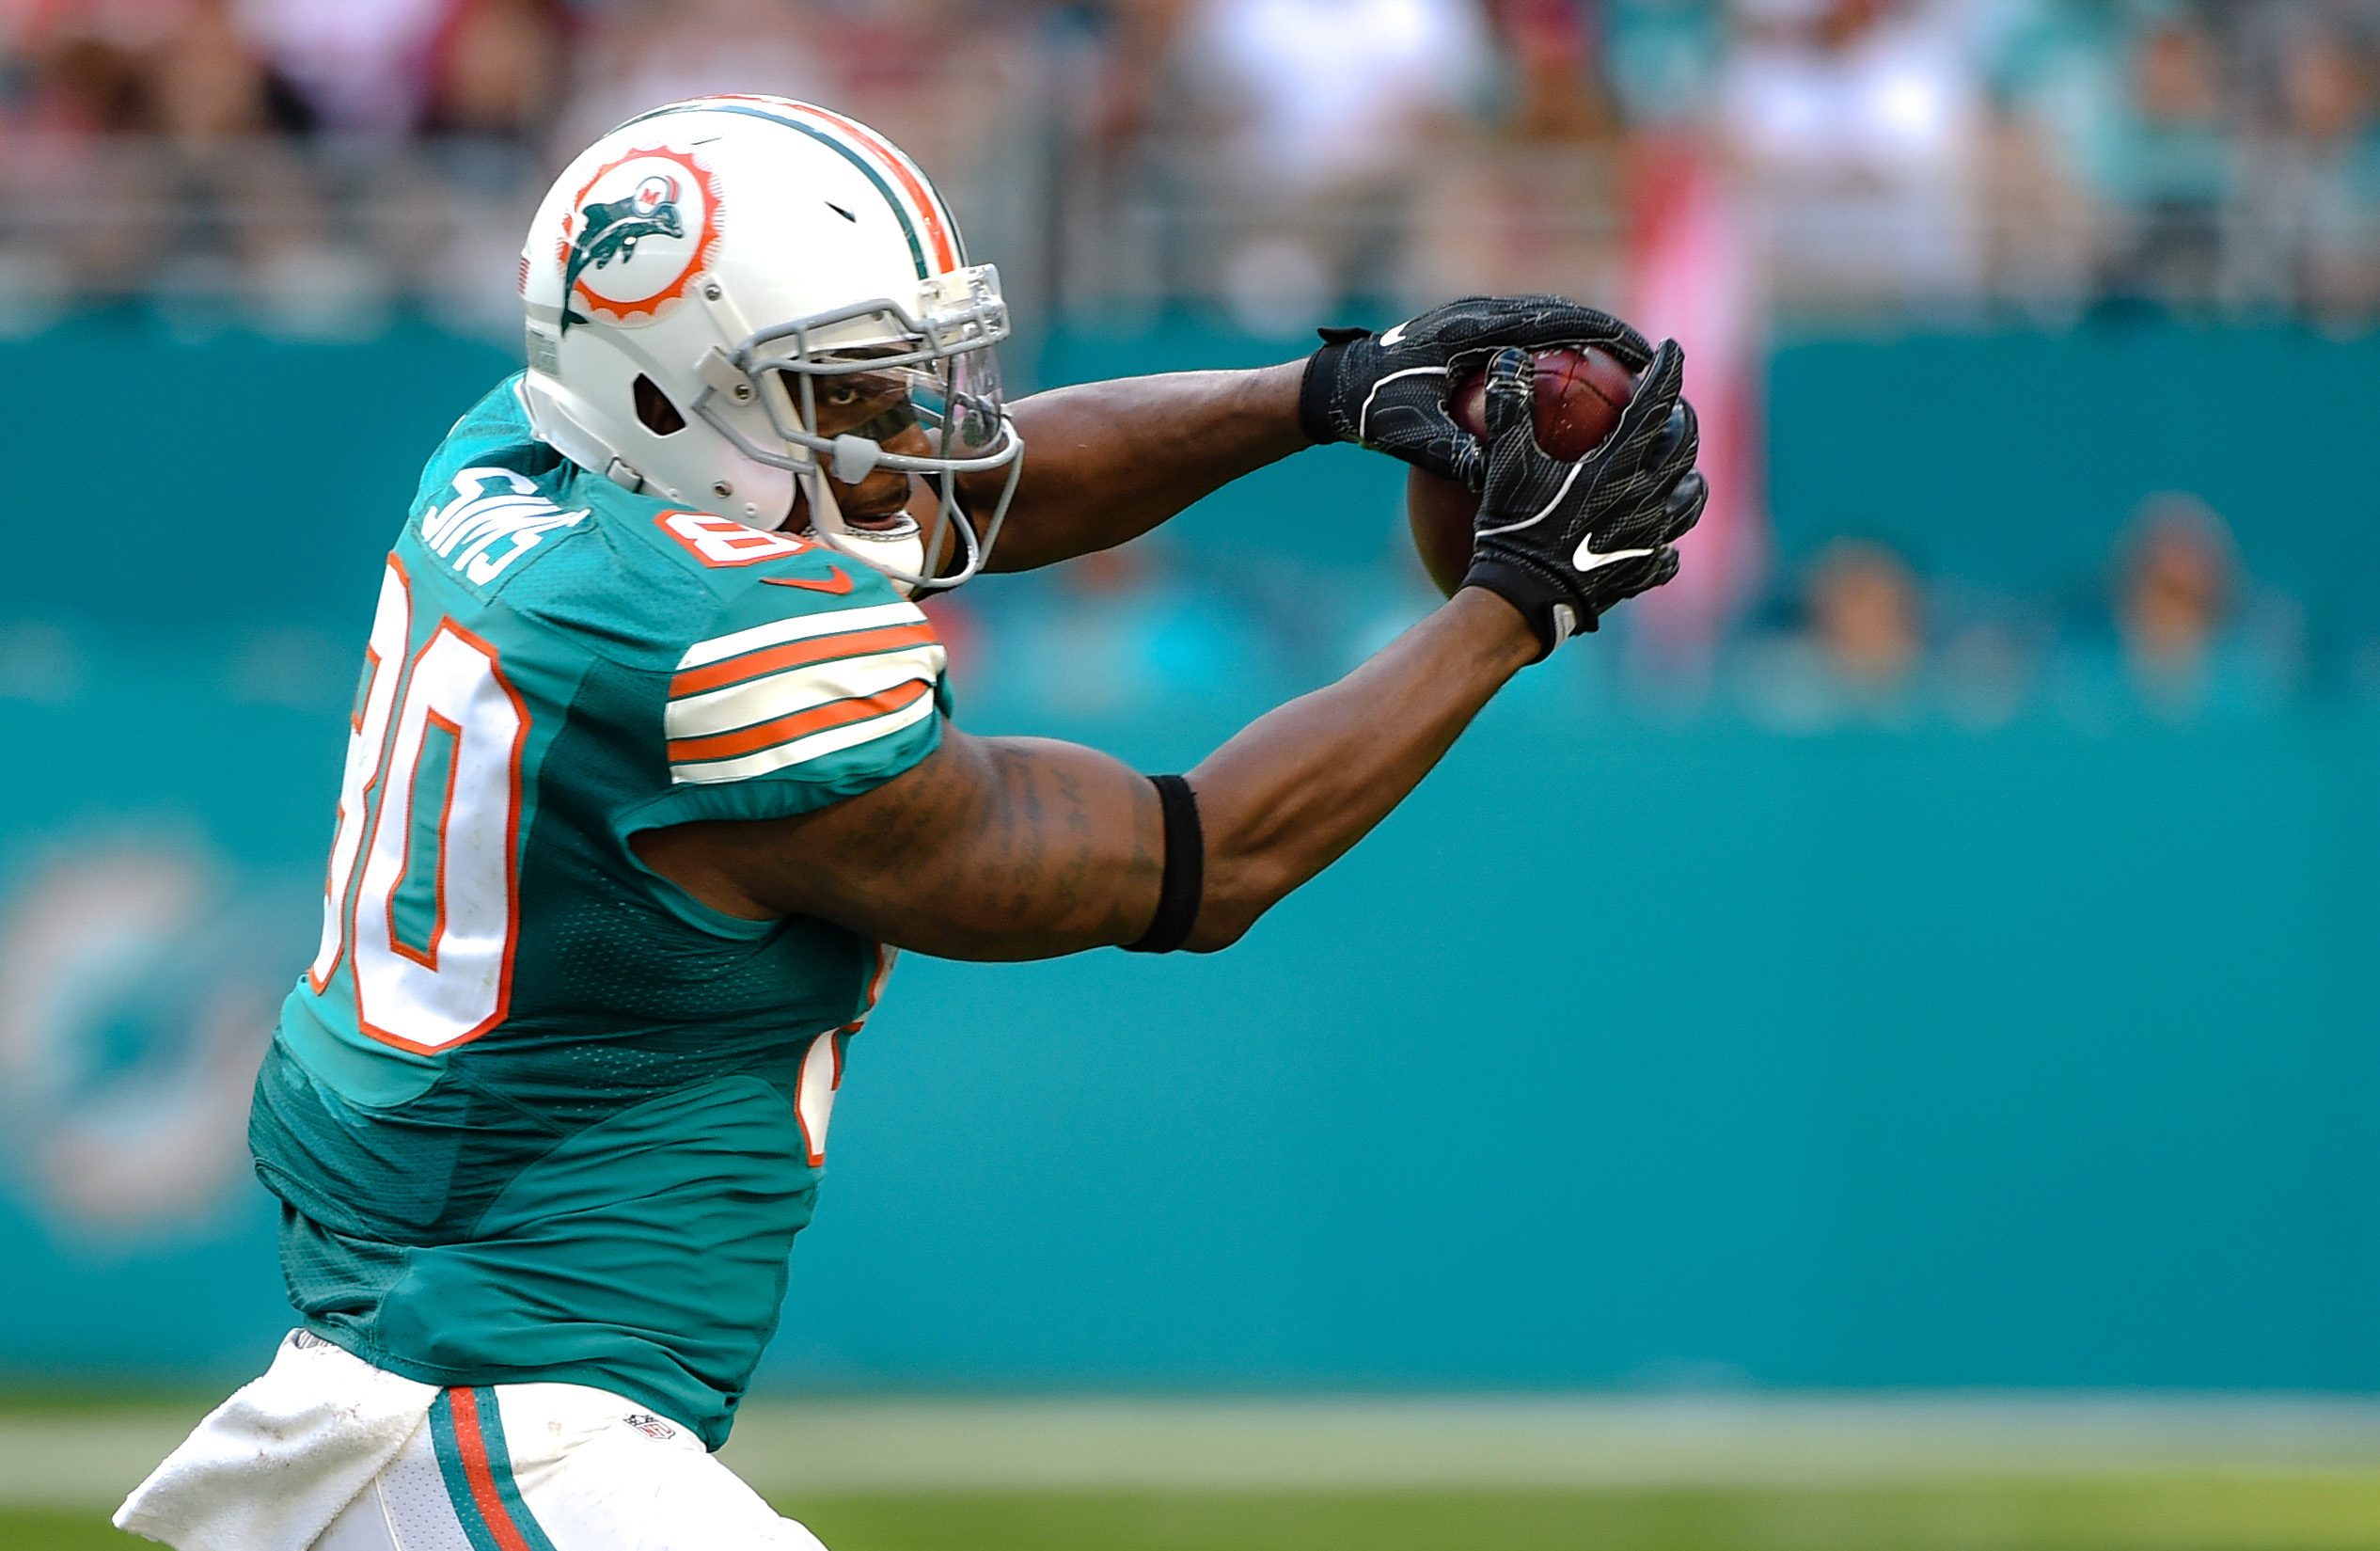 9719148-nfl-san-francisco-49ers-at-miami-dolphins